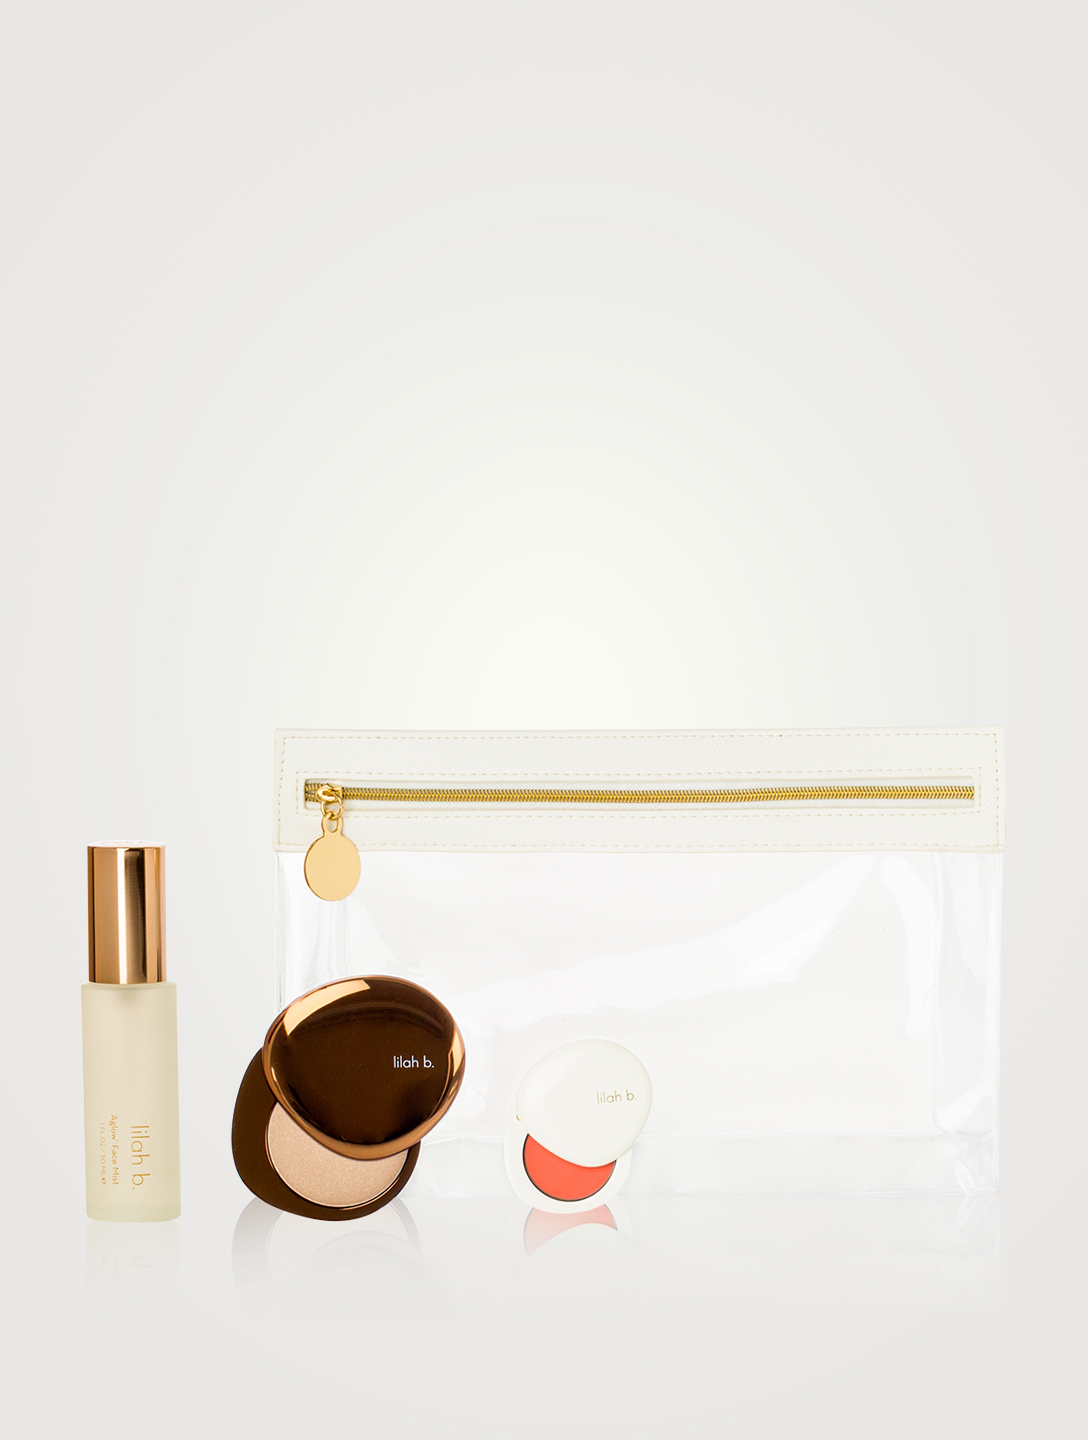 LILAH B. Summer Glow Getter Set Beauty